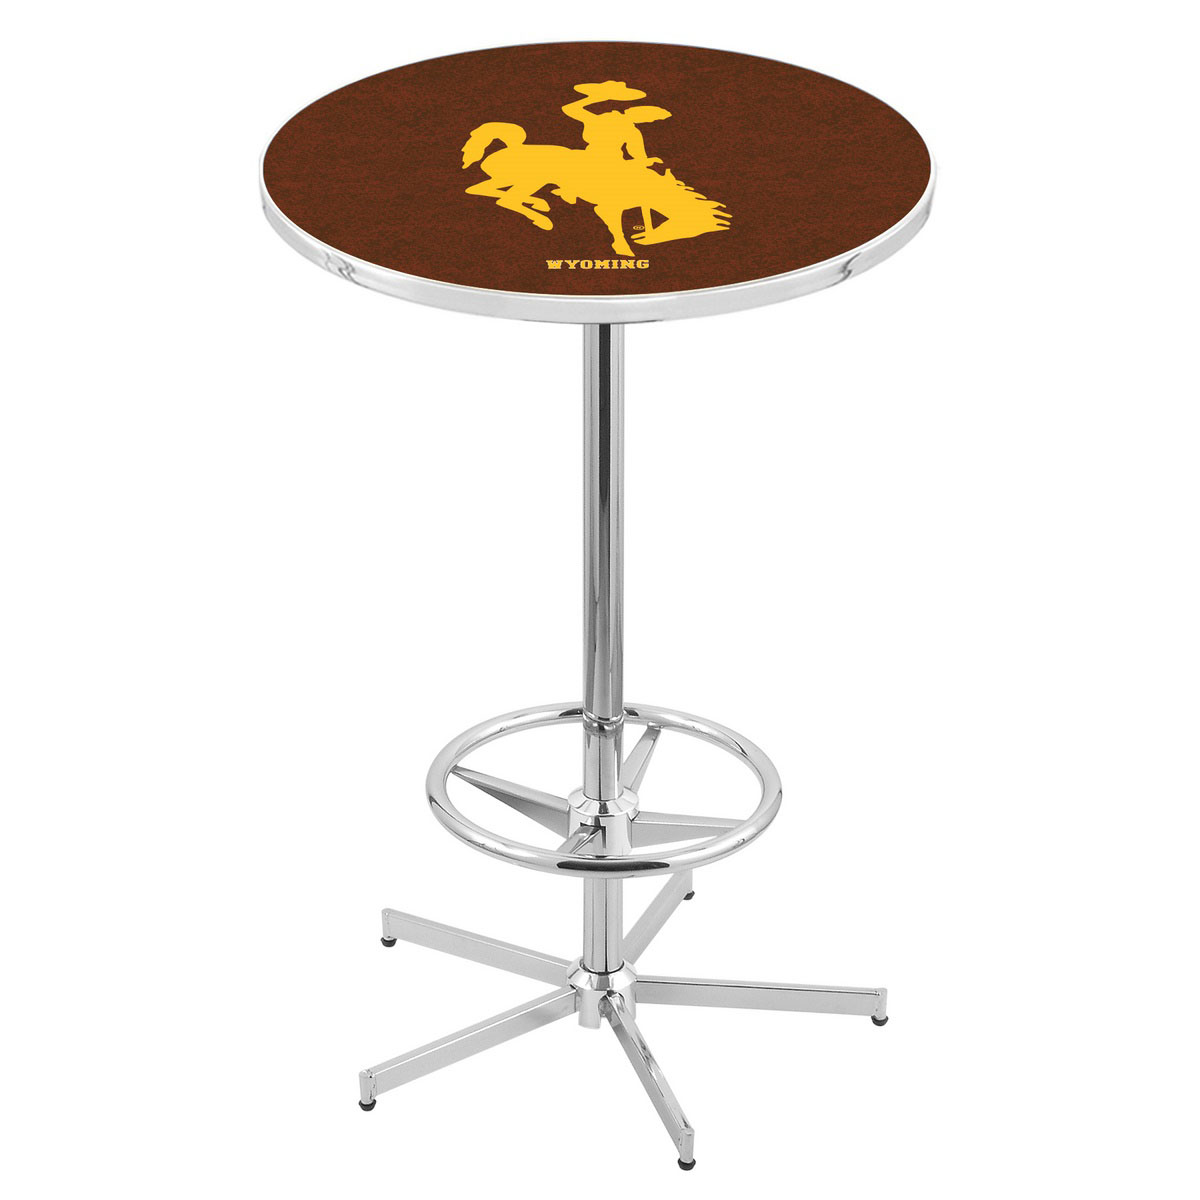 Superb-quality Chrome Wyoming Pub Table Product Photo